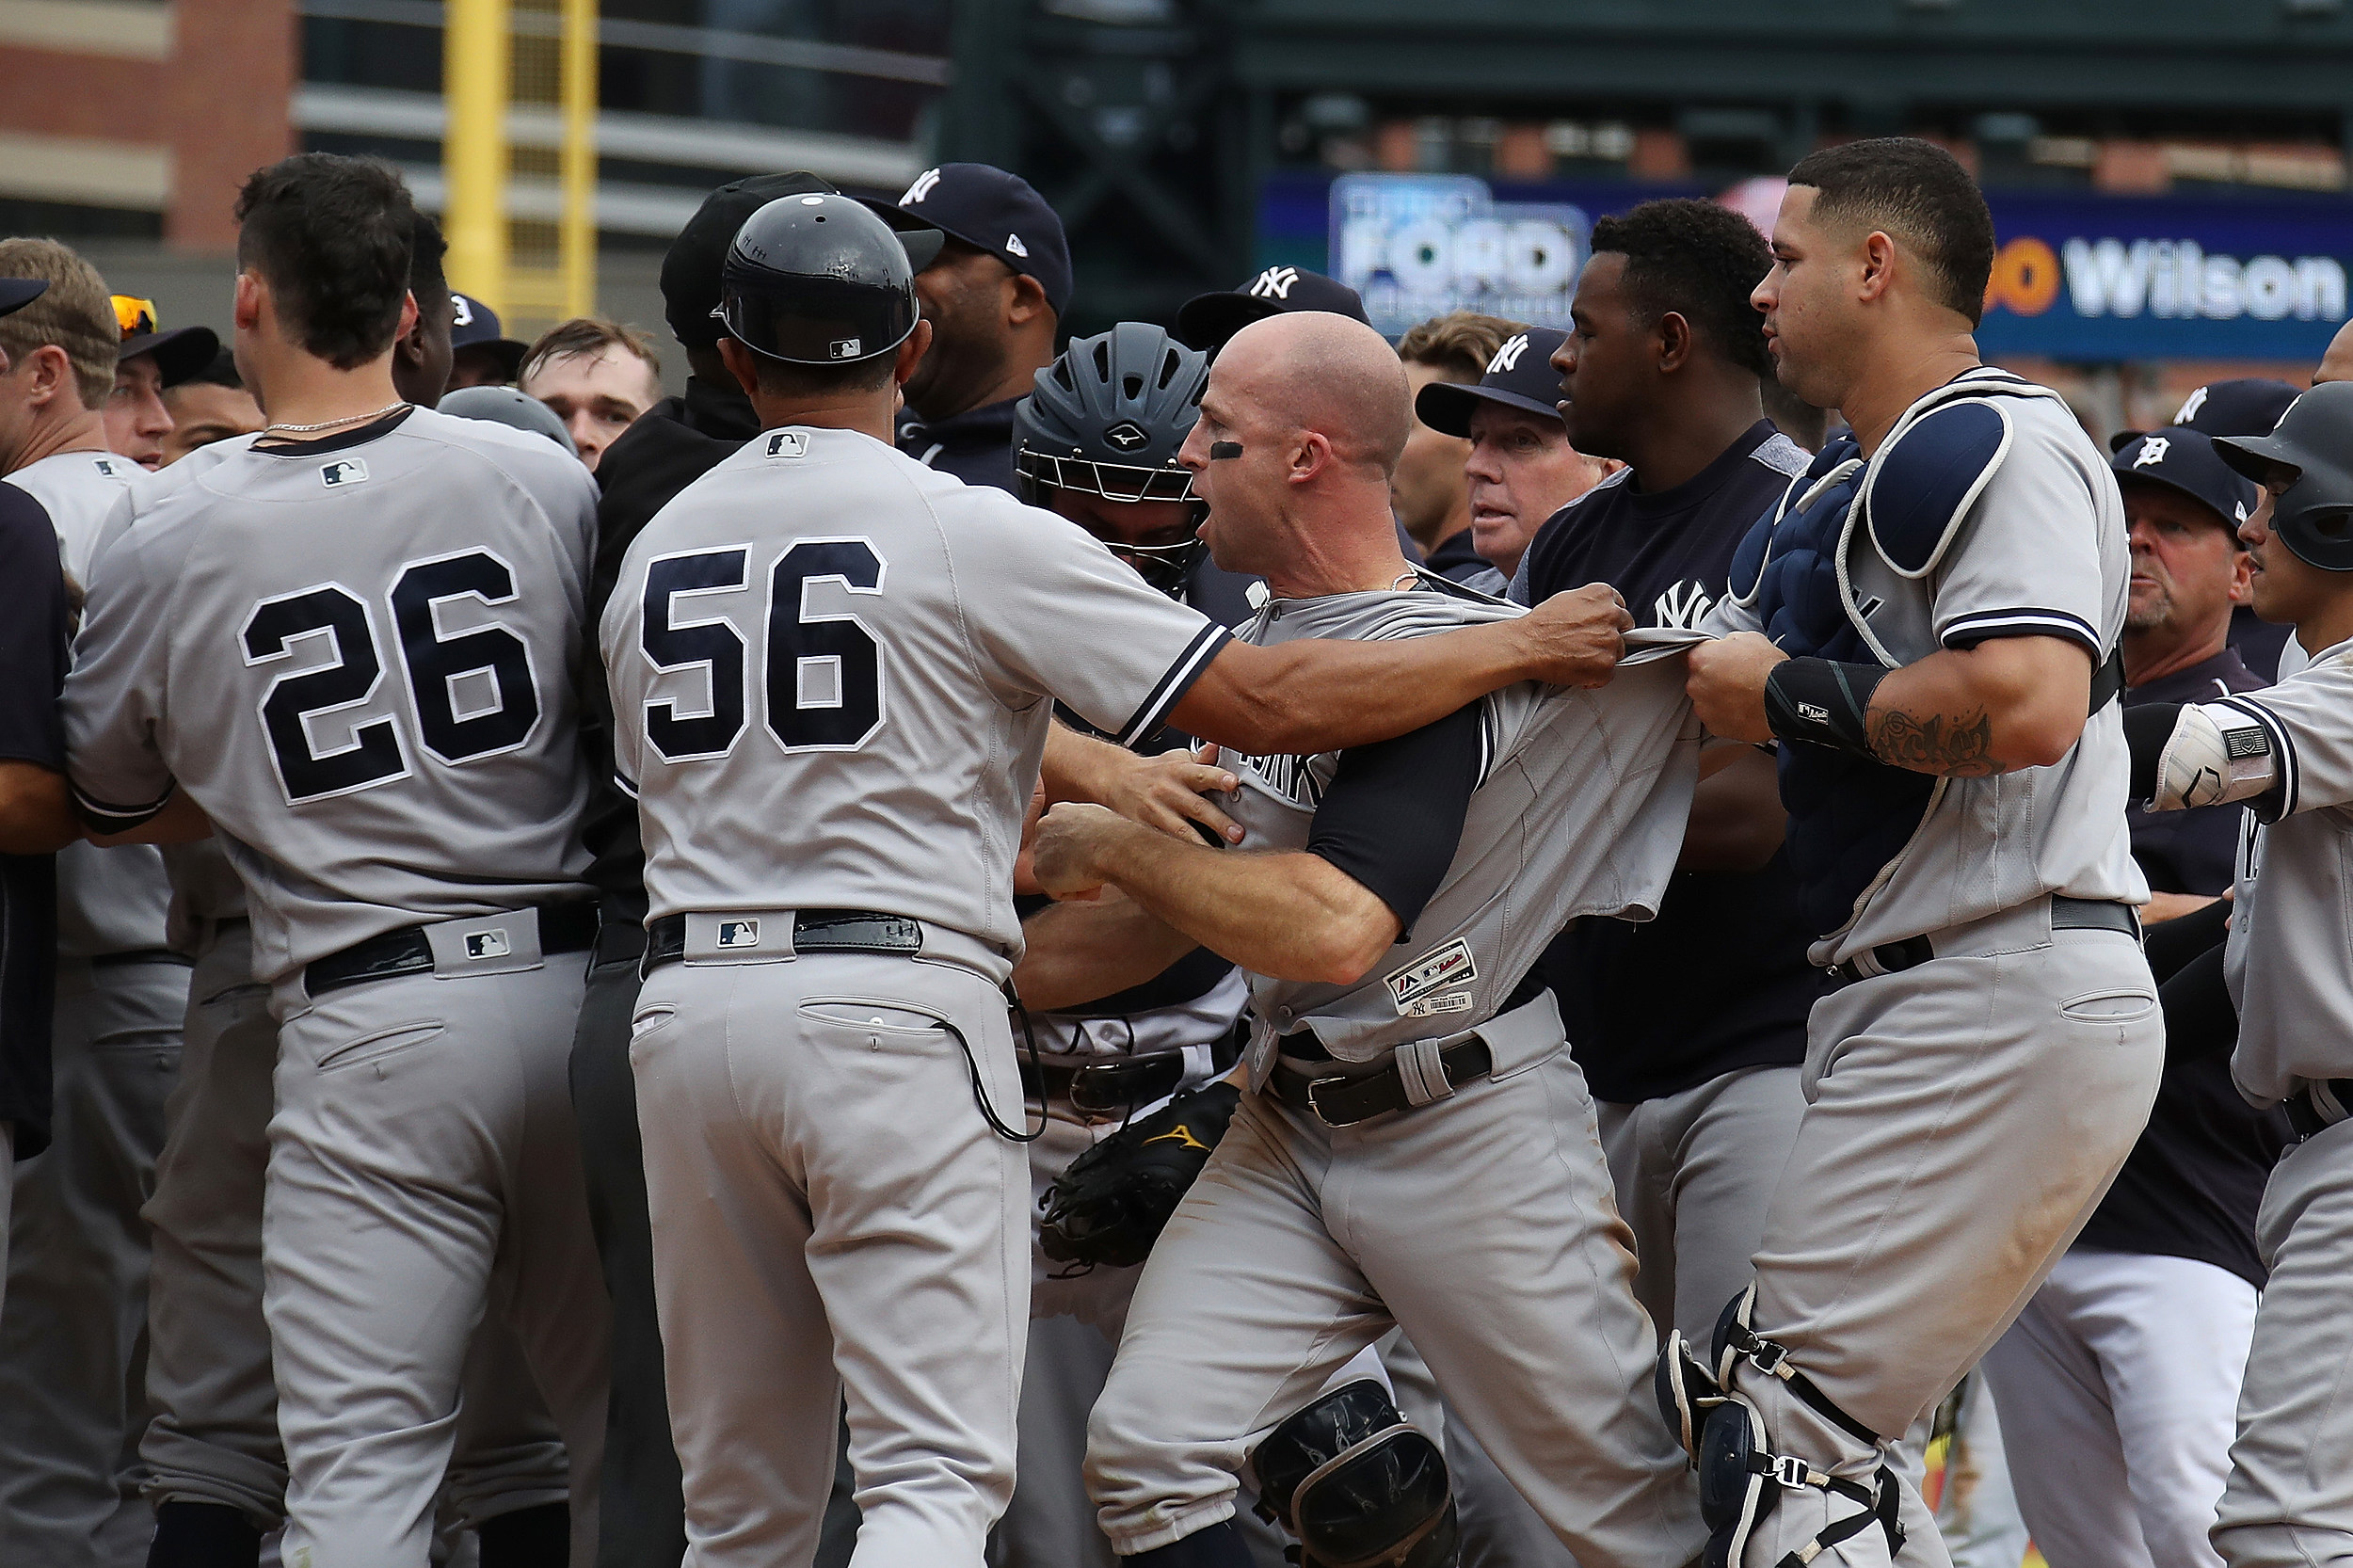 After Miggy Brawl, Verlander and Martinez Argue Heatedly, but Why?